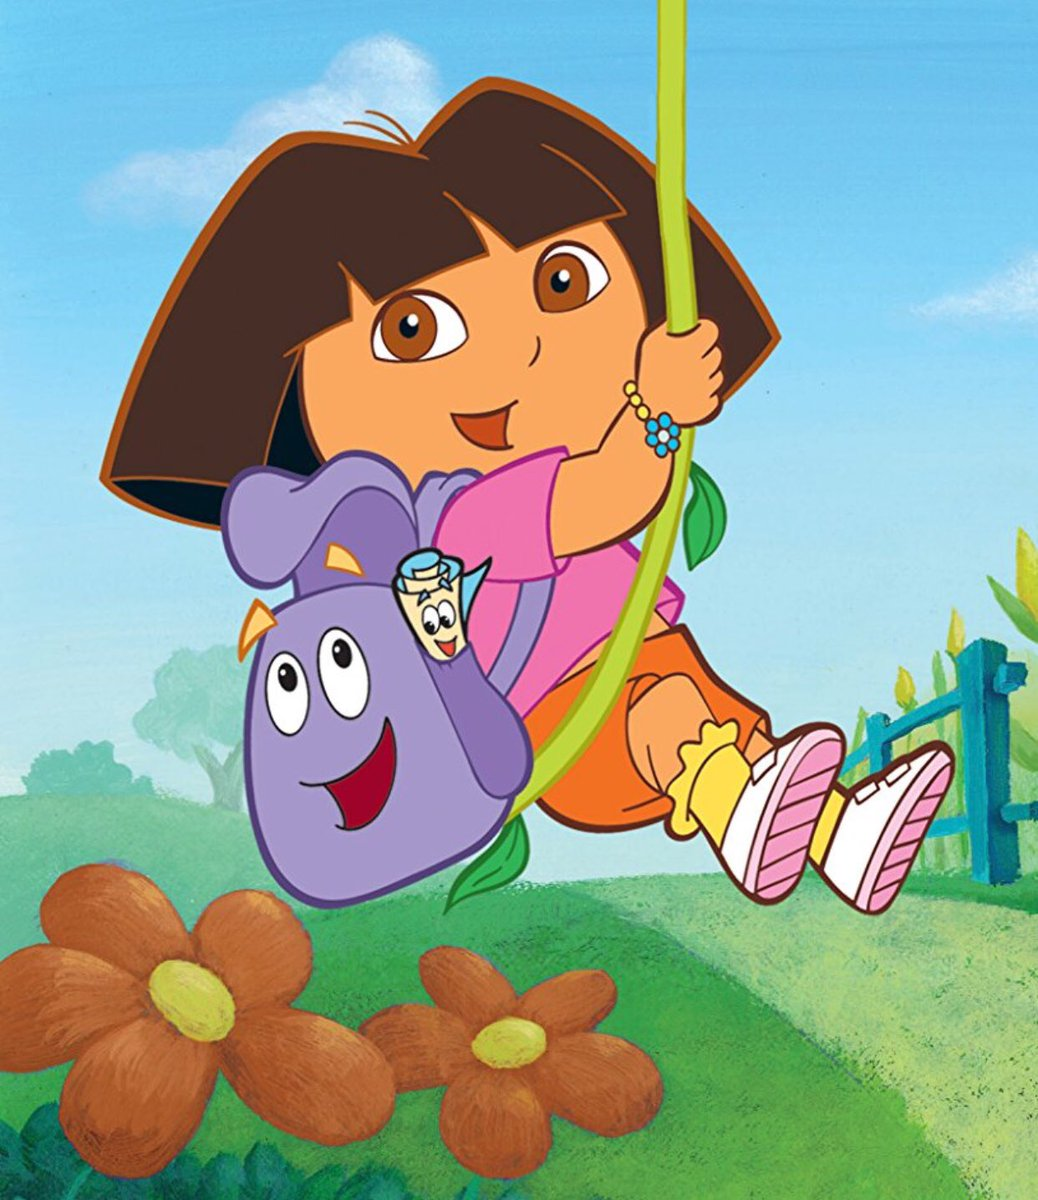 Michael Bay is set to produce a live-action #DoraTheExplorer movie!